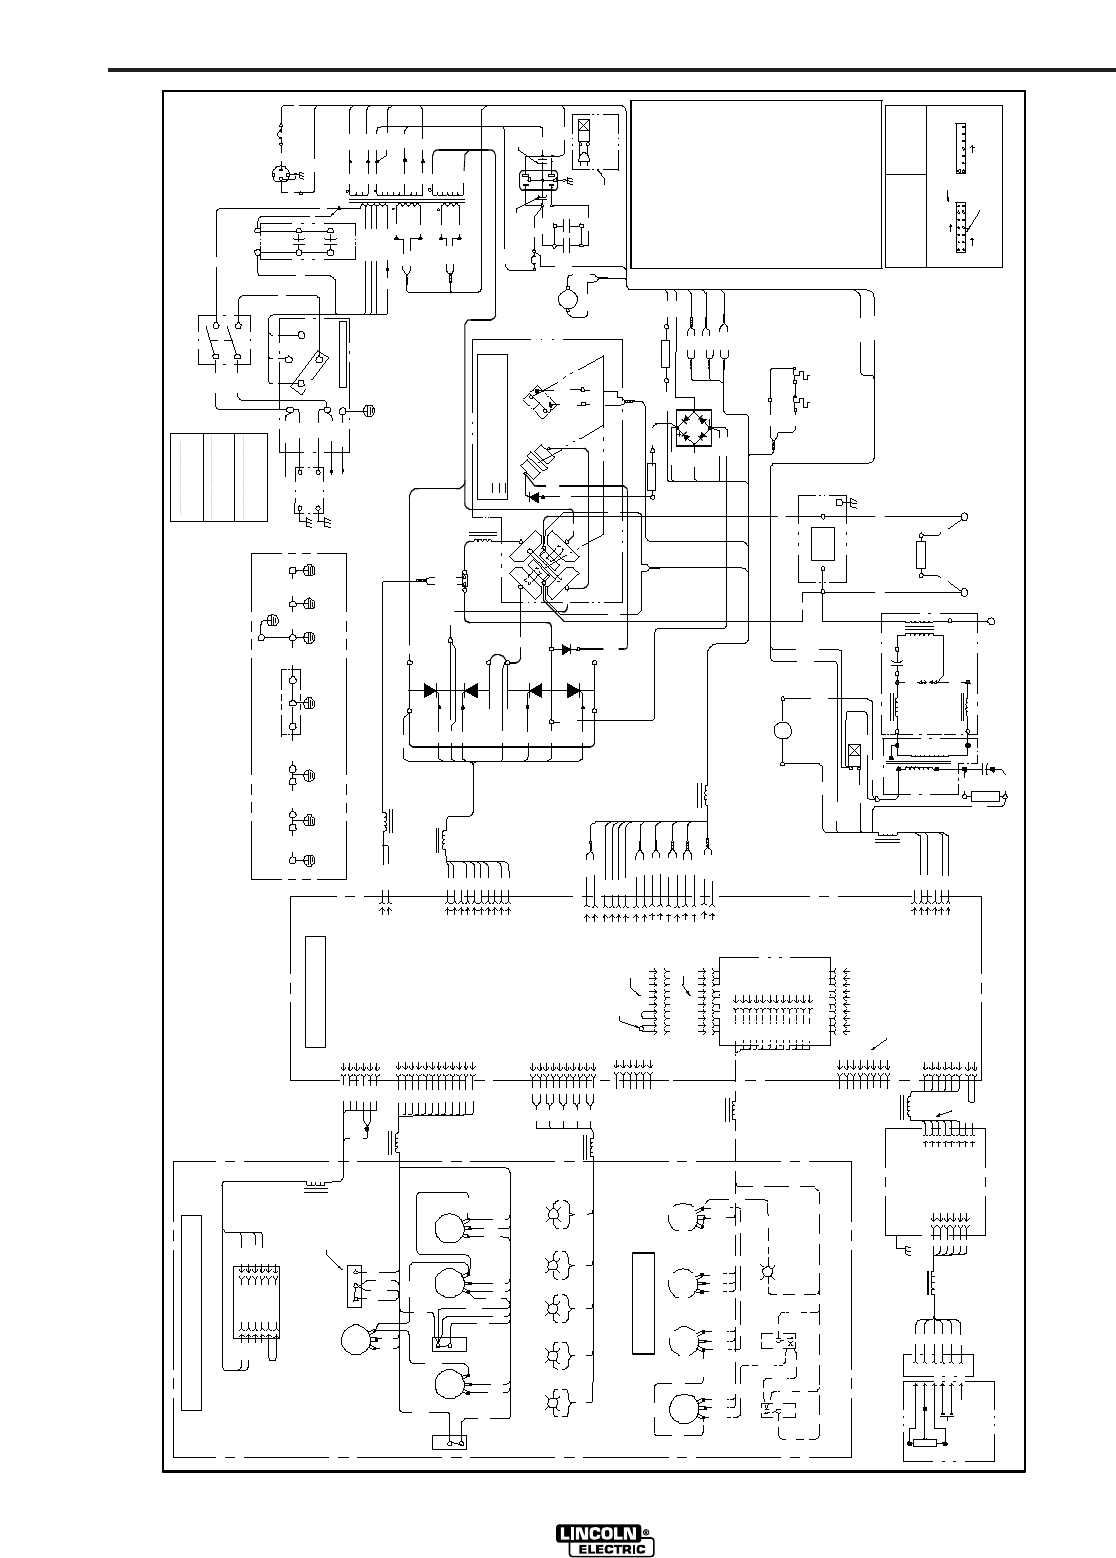 Lincoln Sa 250 Welder Wiring Diagram Diesel 200 225 Generator Diagrams Sony Cdx Gt310 On